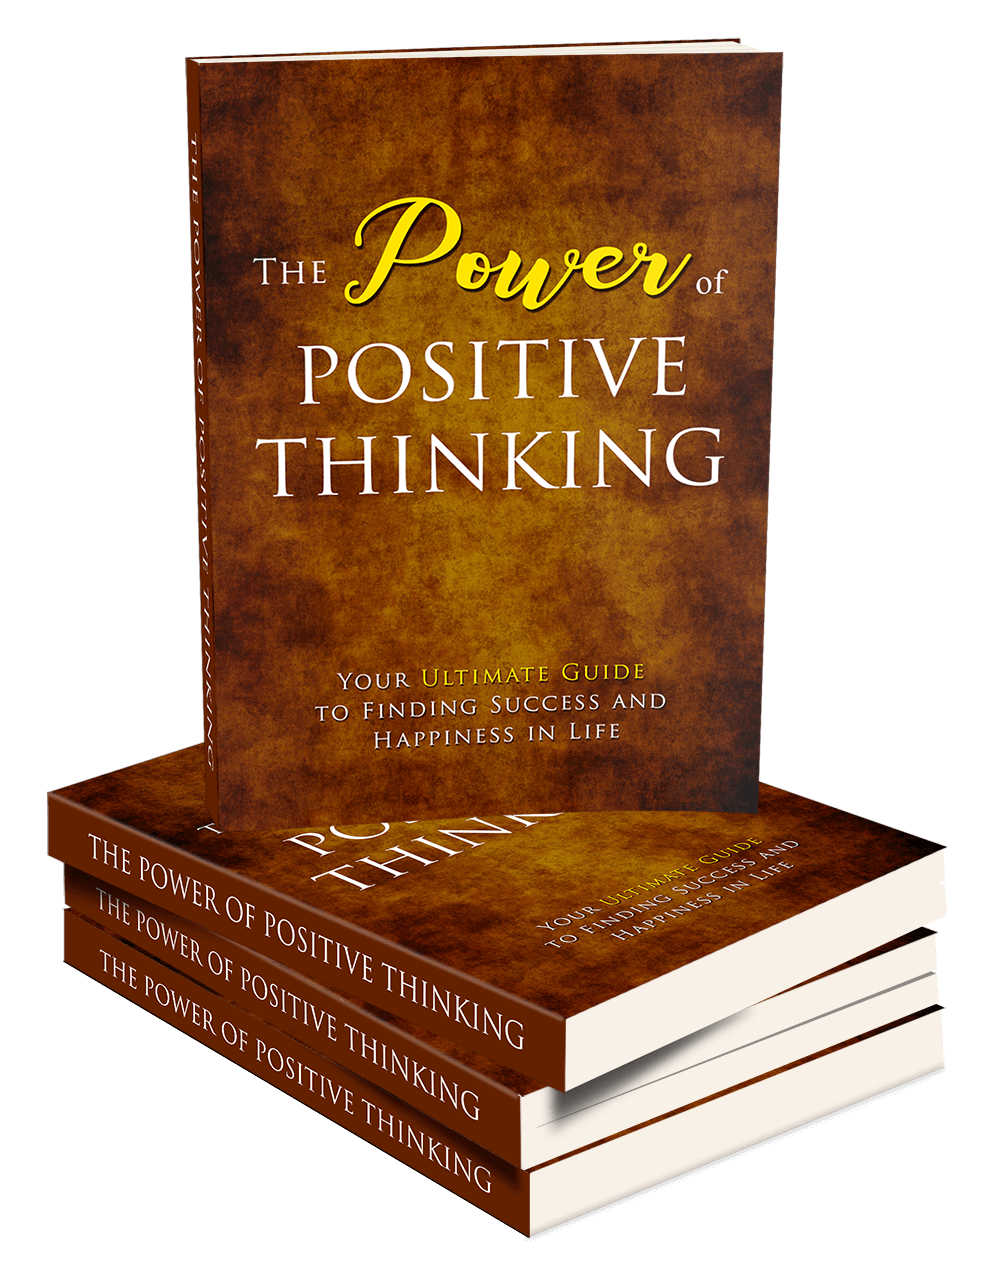 The Power Of Positive Thinking V2, This Is The Ultimate Blueprint For People Who Want To Progress Further In Life With A Simple Mindset Switch.